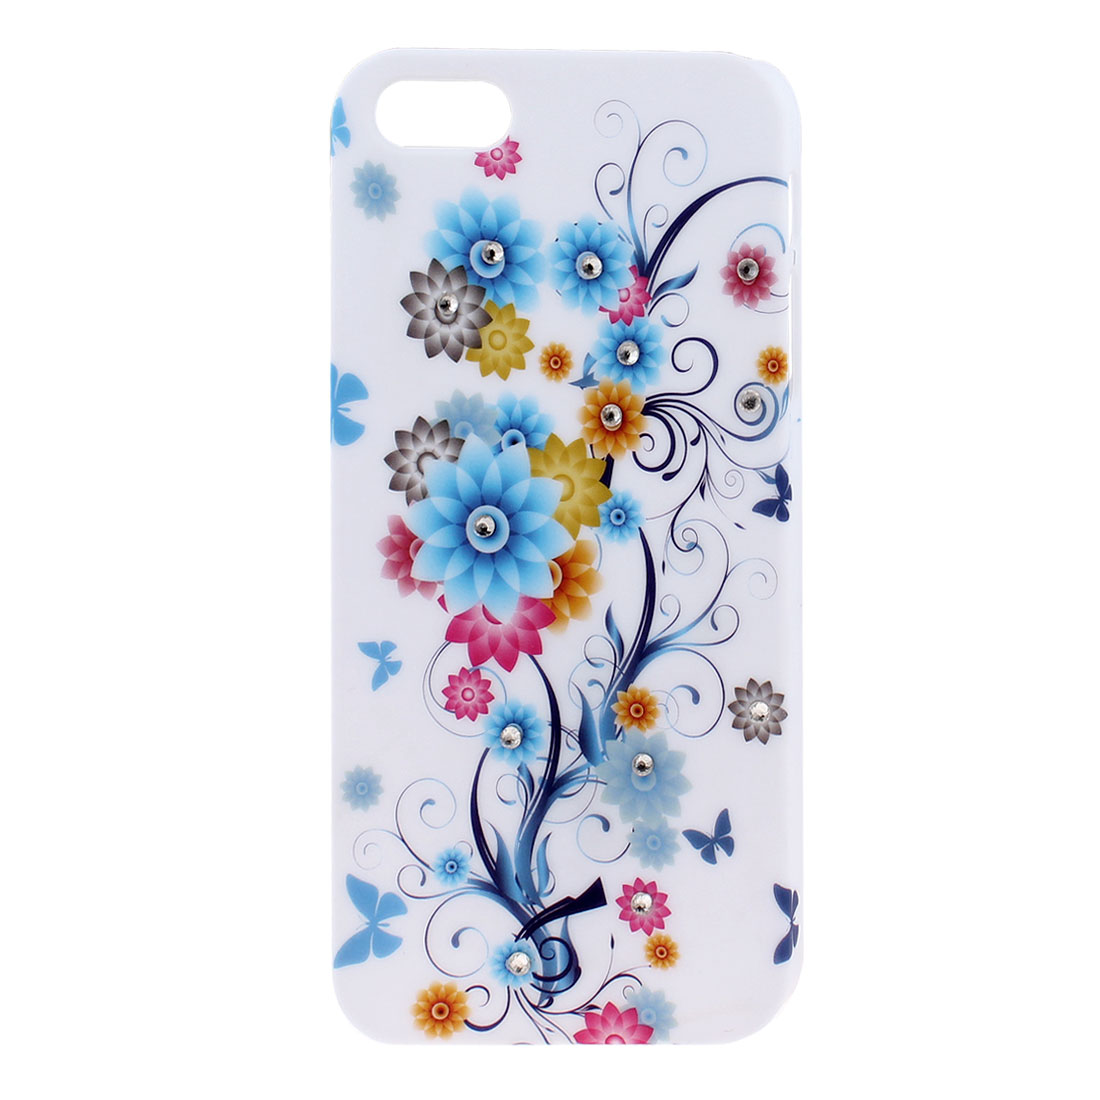 Glittery Rhinestone Decor Flower Back Case Cover Shell White for iPhone 5 5G